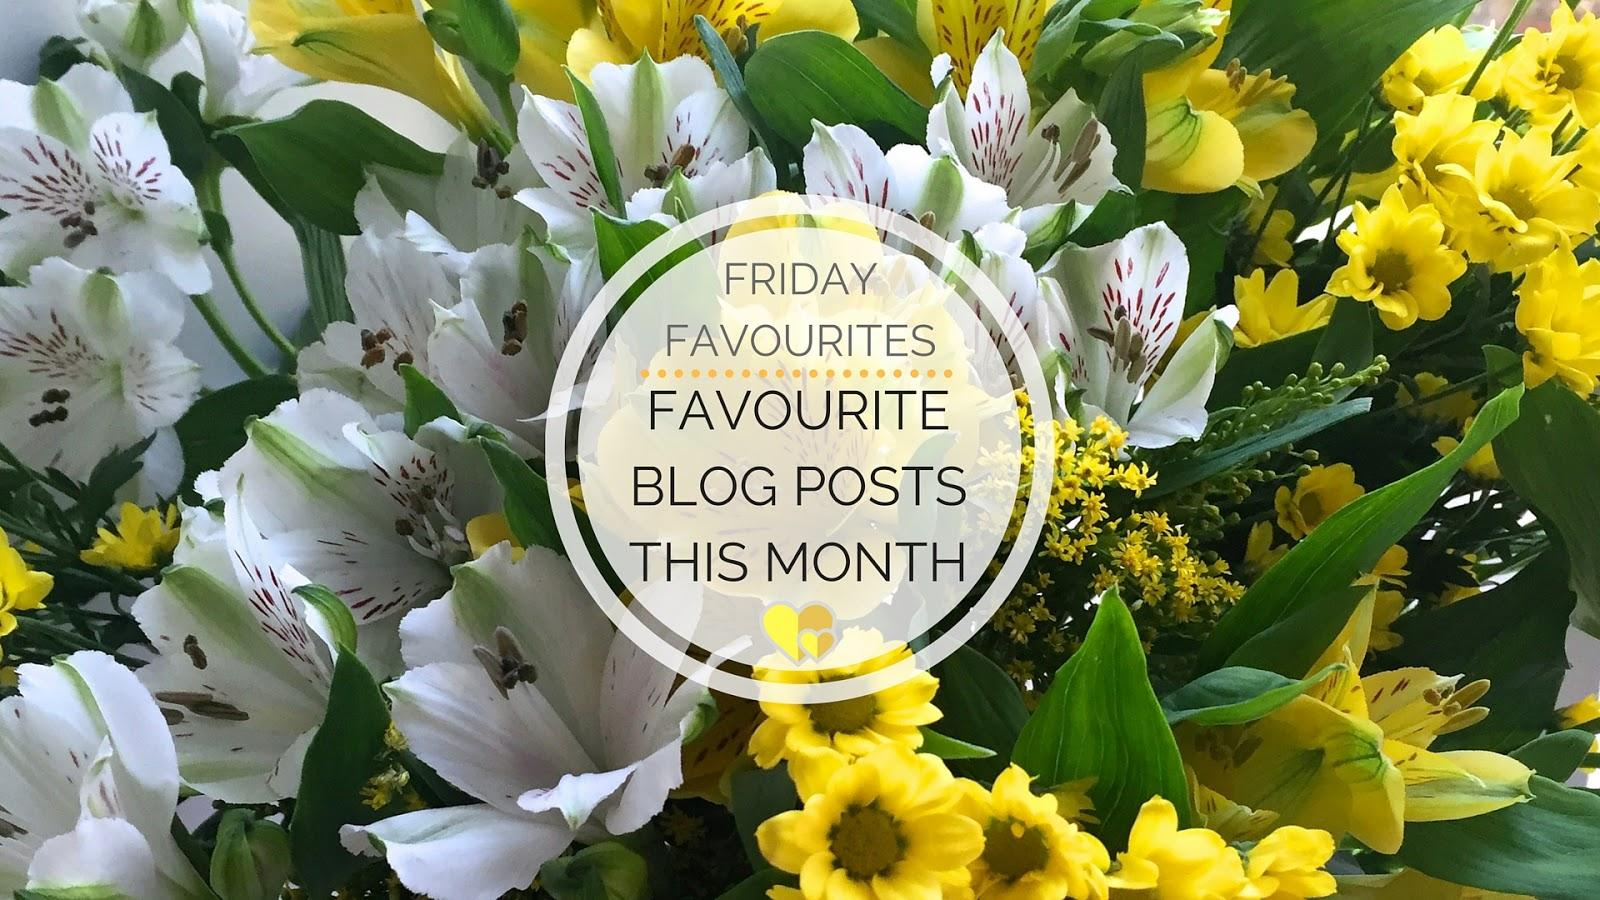 Friday Favourites -- My Favourite Blog Posts This Month